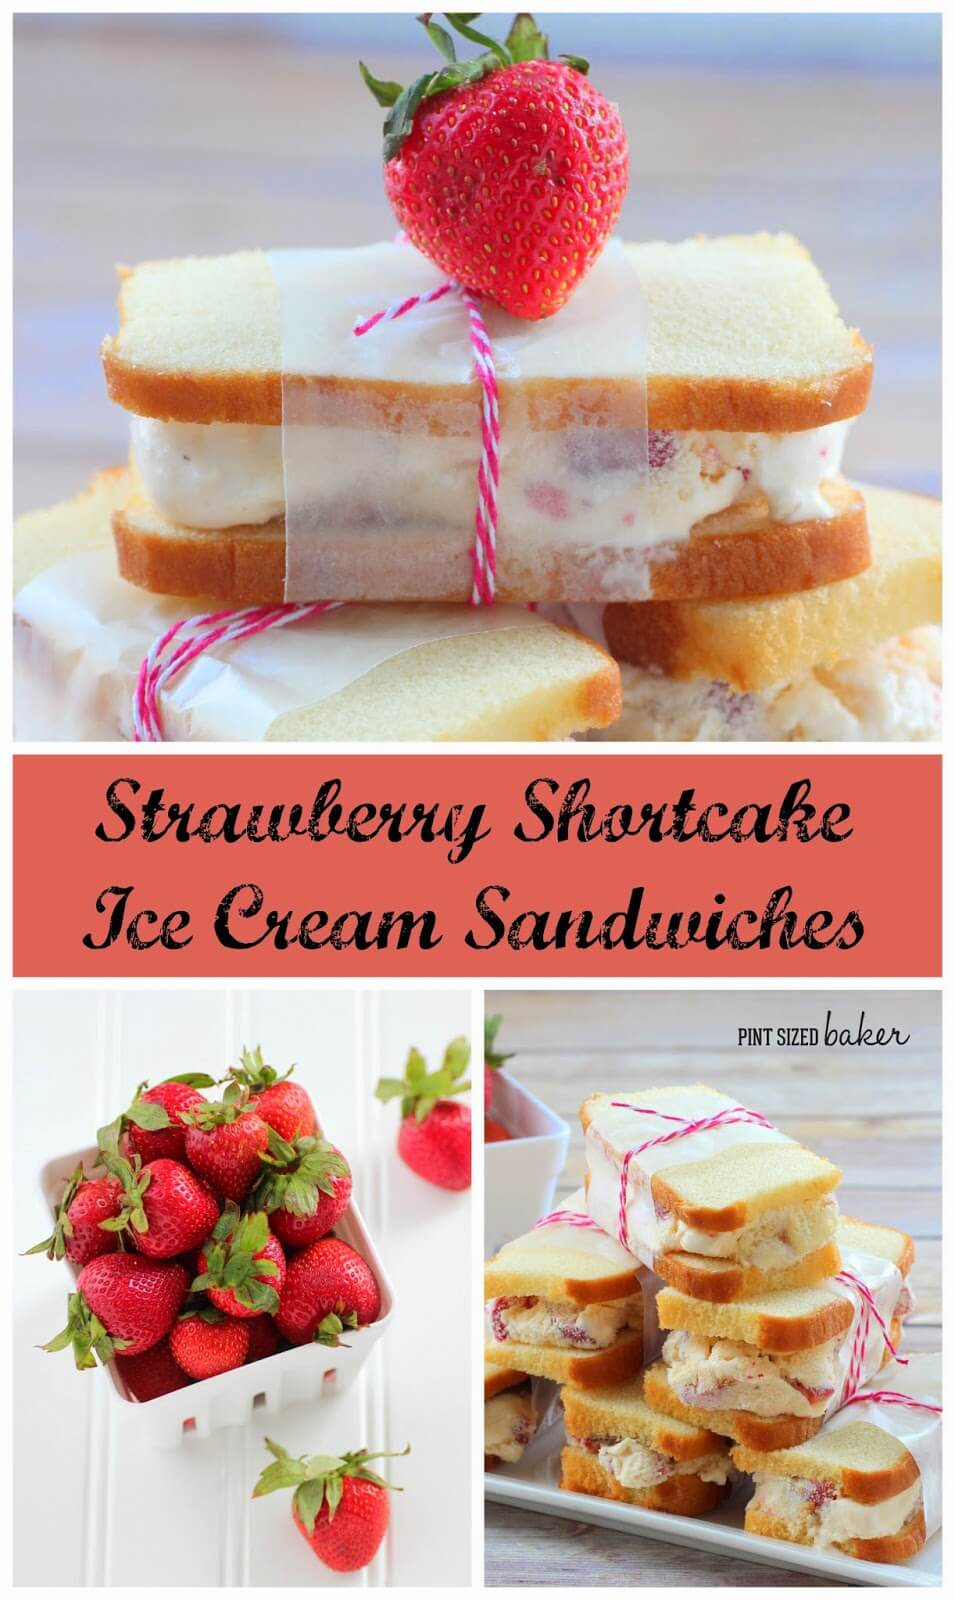 Strawberry Shortcake Ice Cream Sandwiches